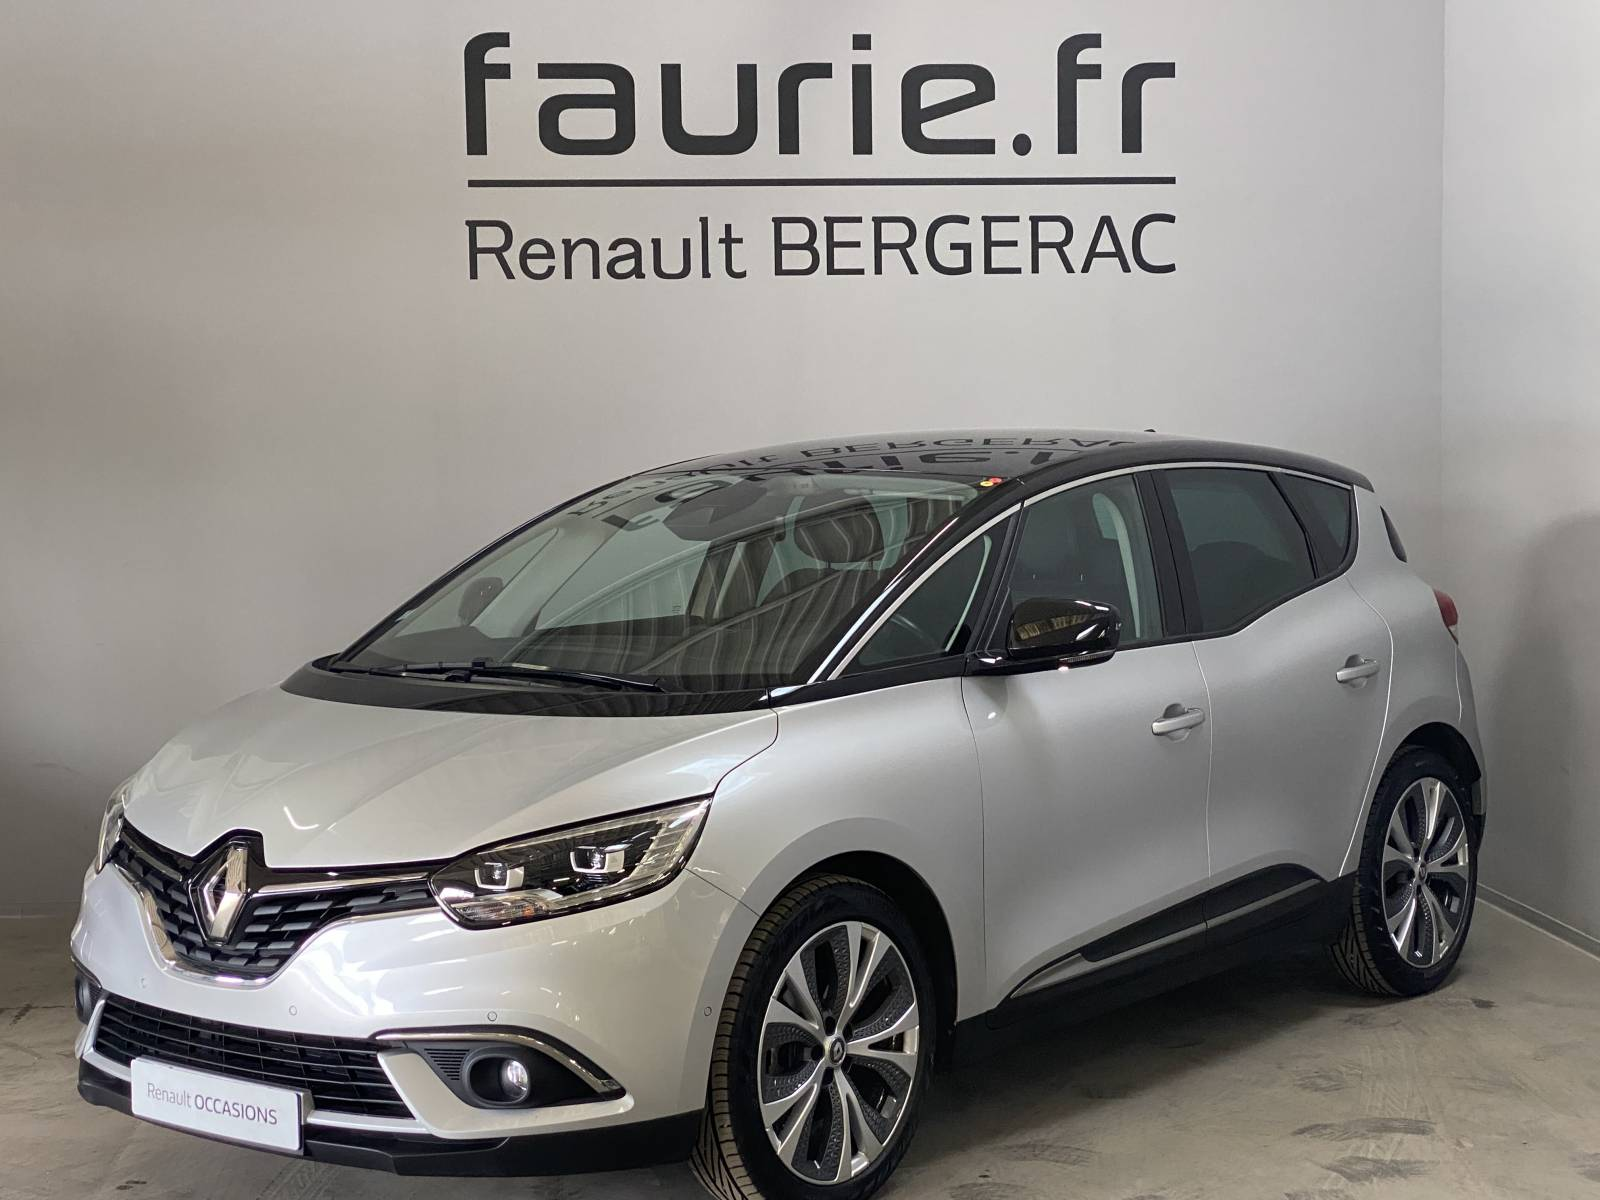 RENAULT Scenic dCi 130 Energy - véhicule d'occasion - Site Internet Faurie - Renault - Faurie Auto Bergerac - 24100 - Bergerac - 1